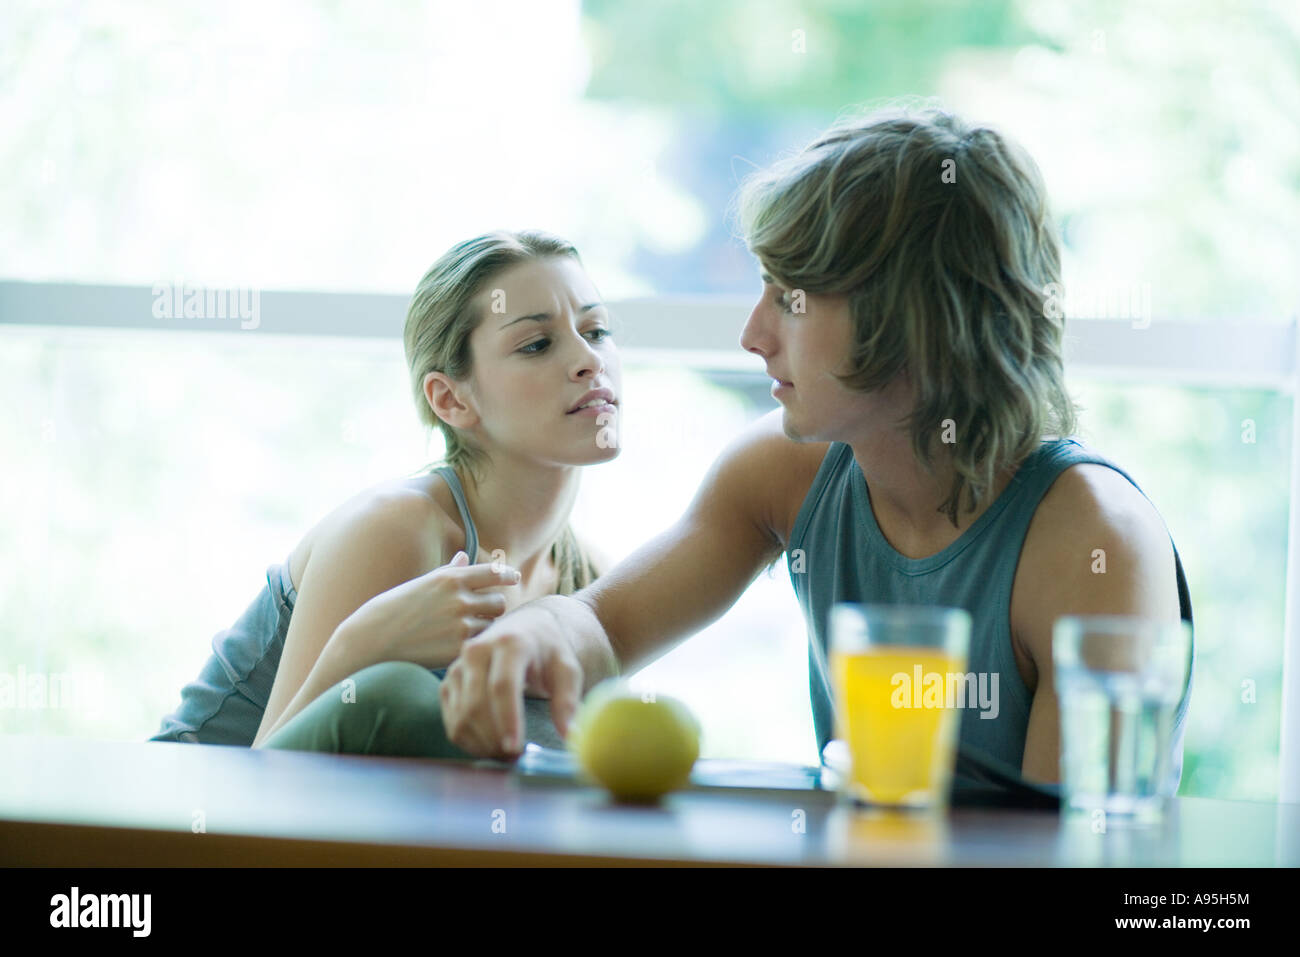 Young couple wearing exercise clothes, sitting side by side, having healthy snack and looking at magazine - Stock Image